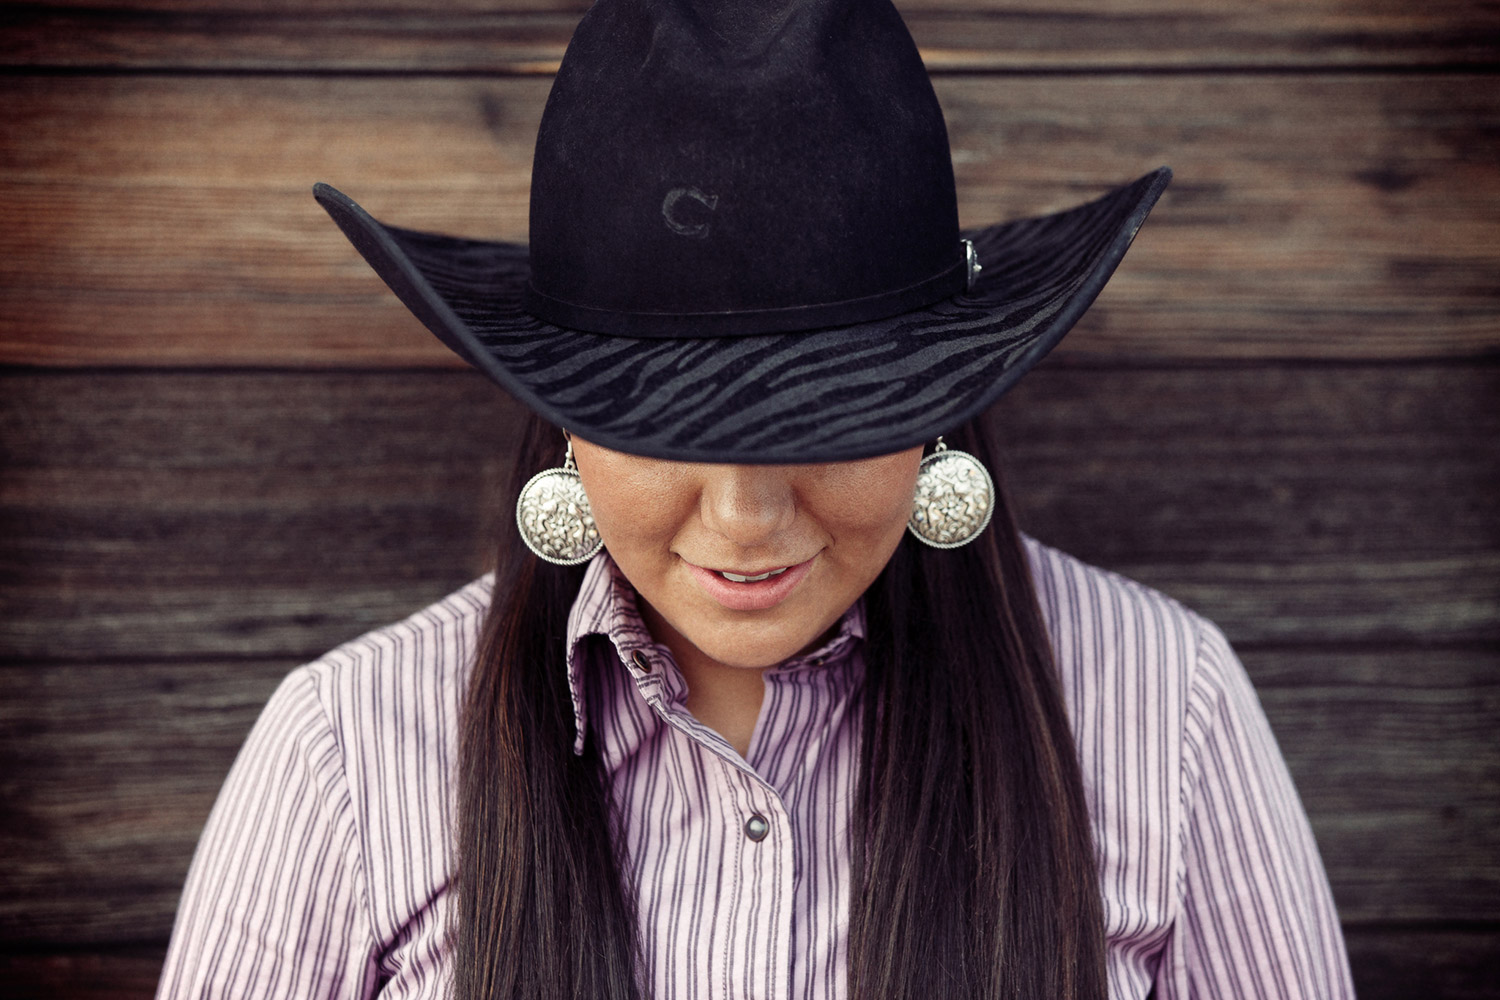 More cowgirl photos; this one is of a member of the MSU-Northern rodeo team poses for me outside of Havre, Montana.